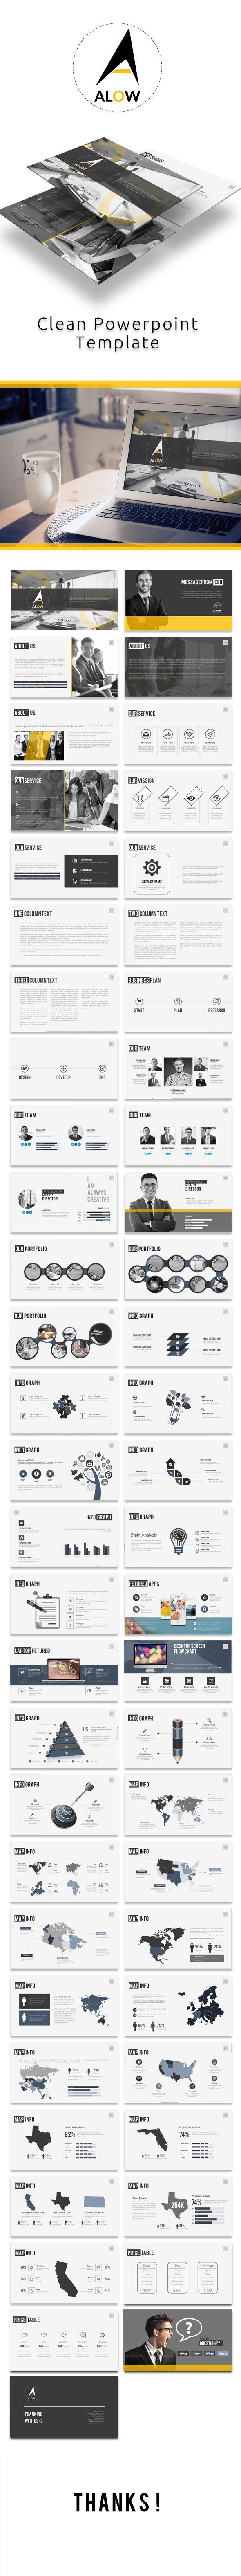 Allow Powerpoint Presentation Template (PowerPoint Templates)